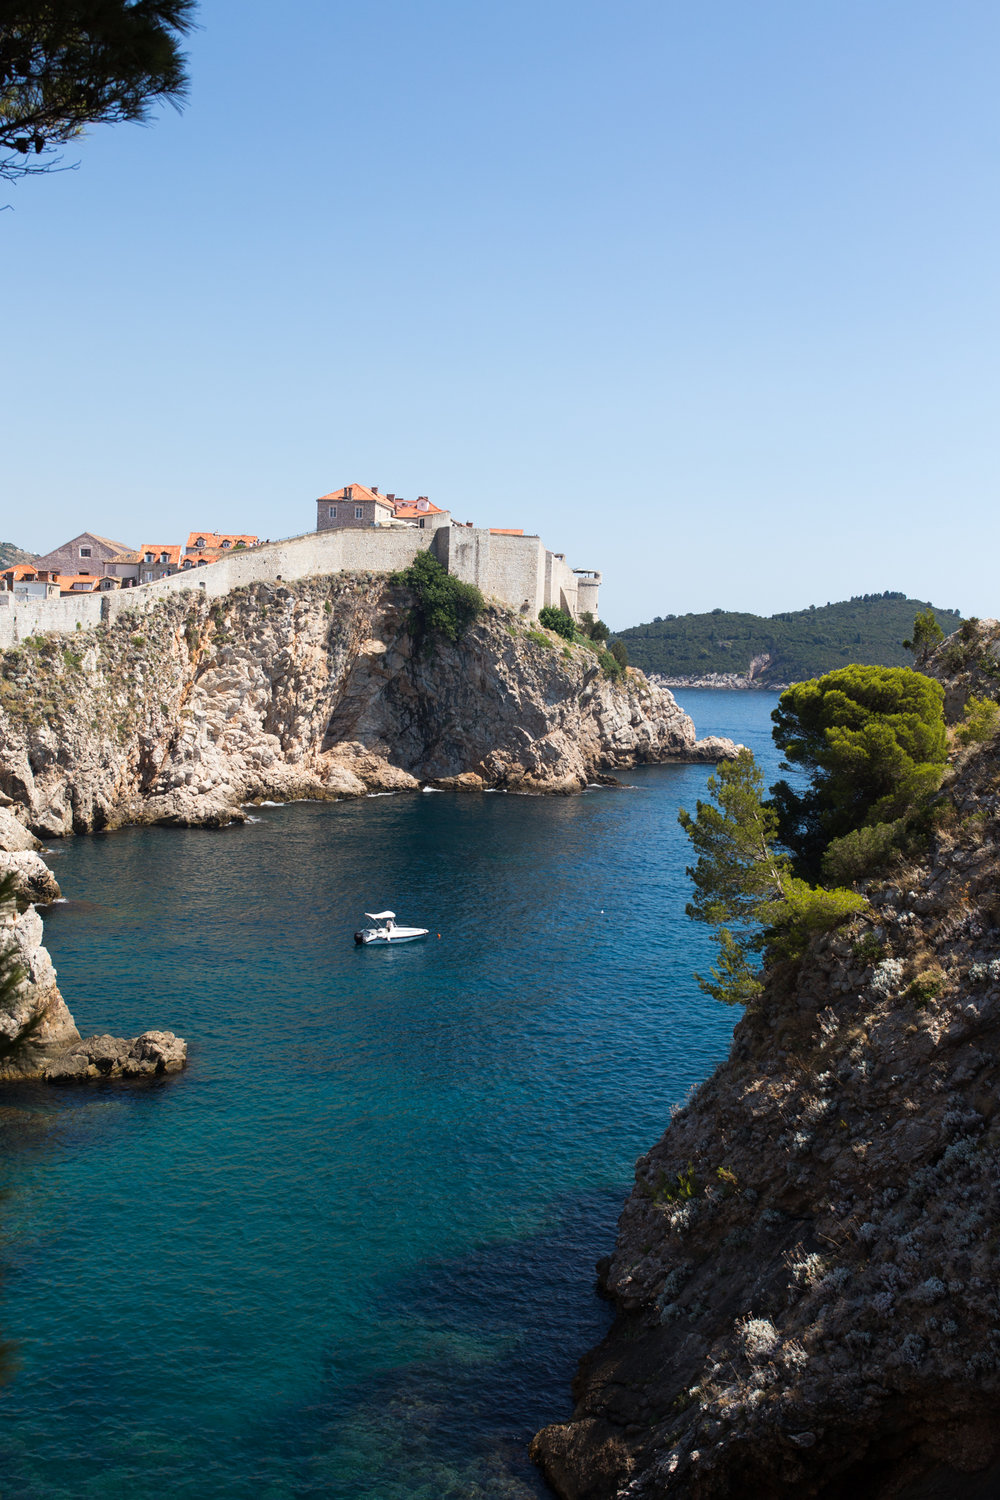 dubrovnik-croatia-dubrovnik hidden spots-dubrovnik beaches-cliff diving in dubrovnik-cliff diving in croatia-arose travels-alina mendoza-9606.jpg